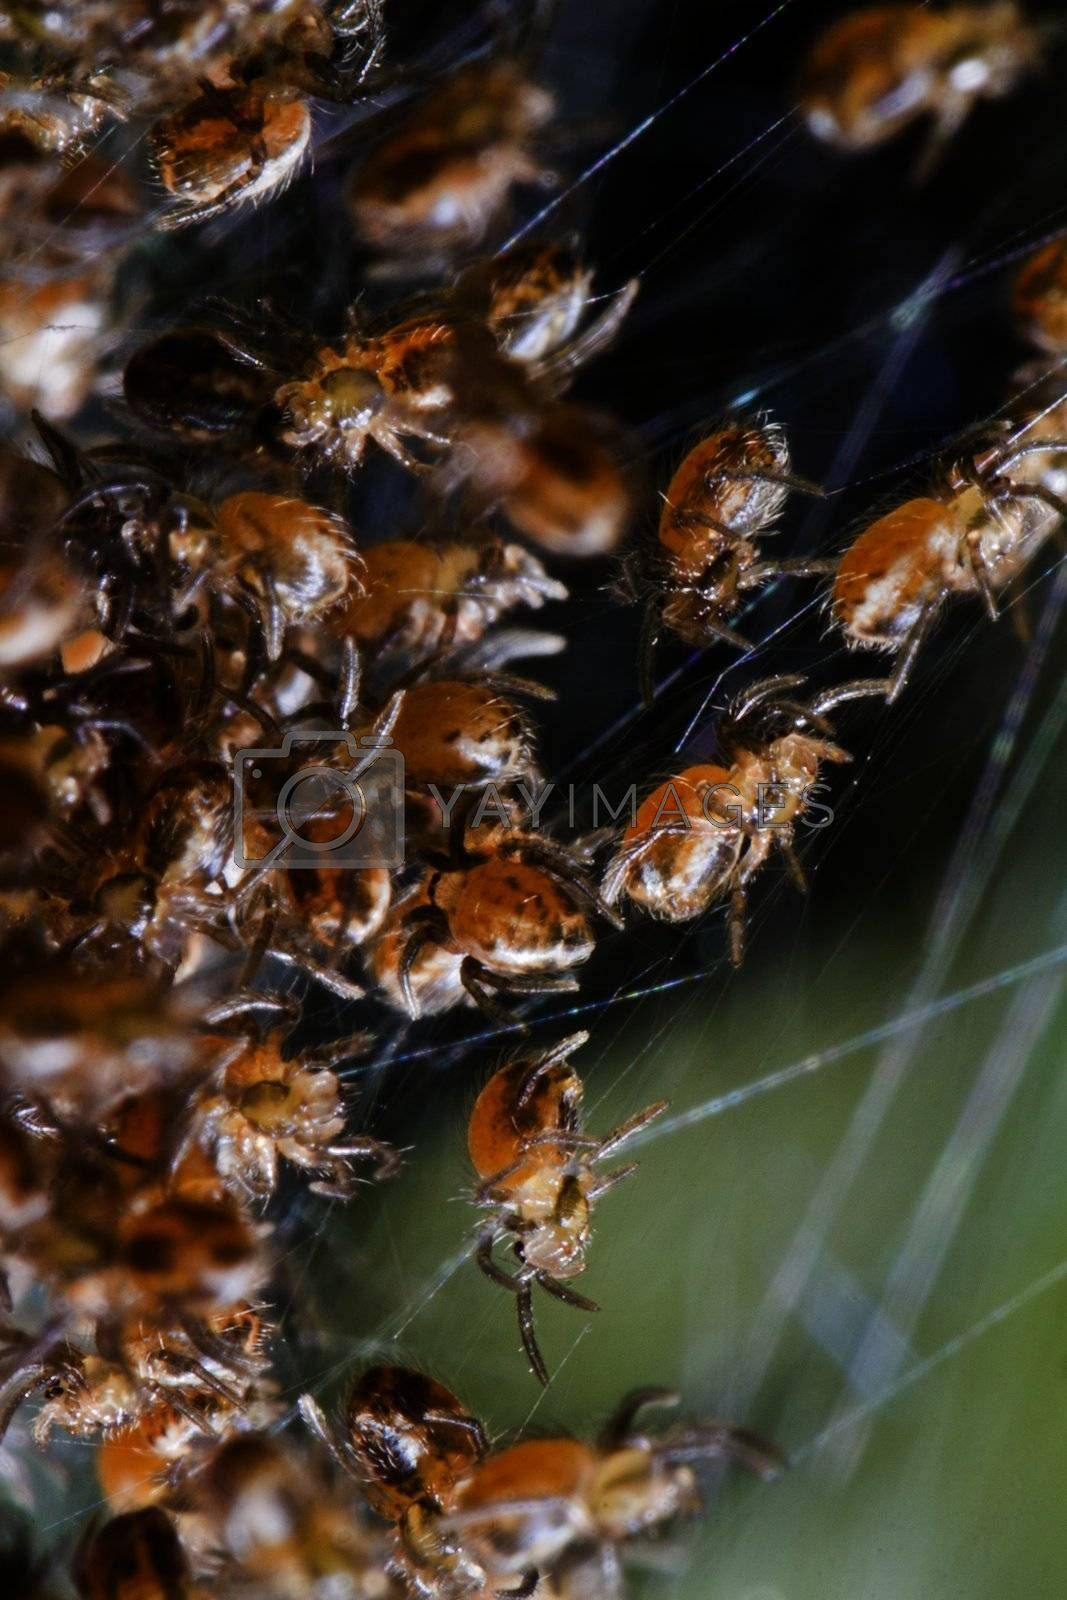 Close up view of many spider babies on a web.